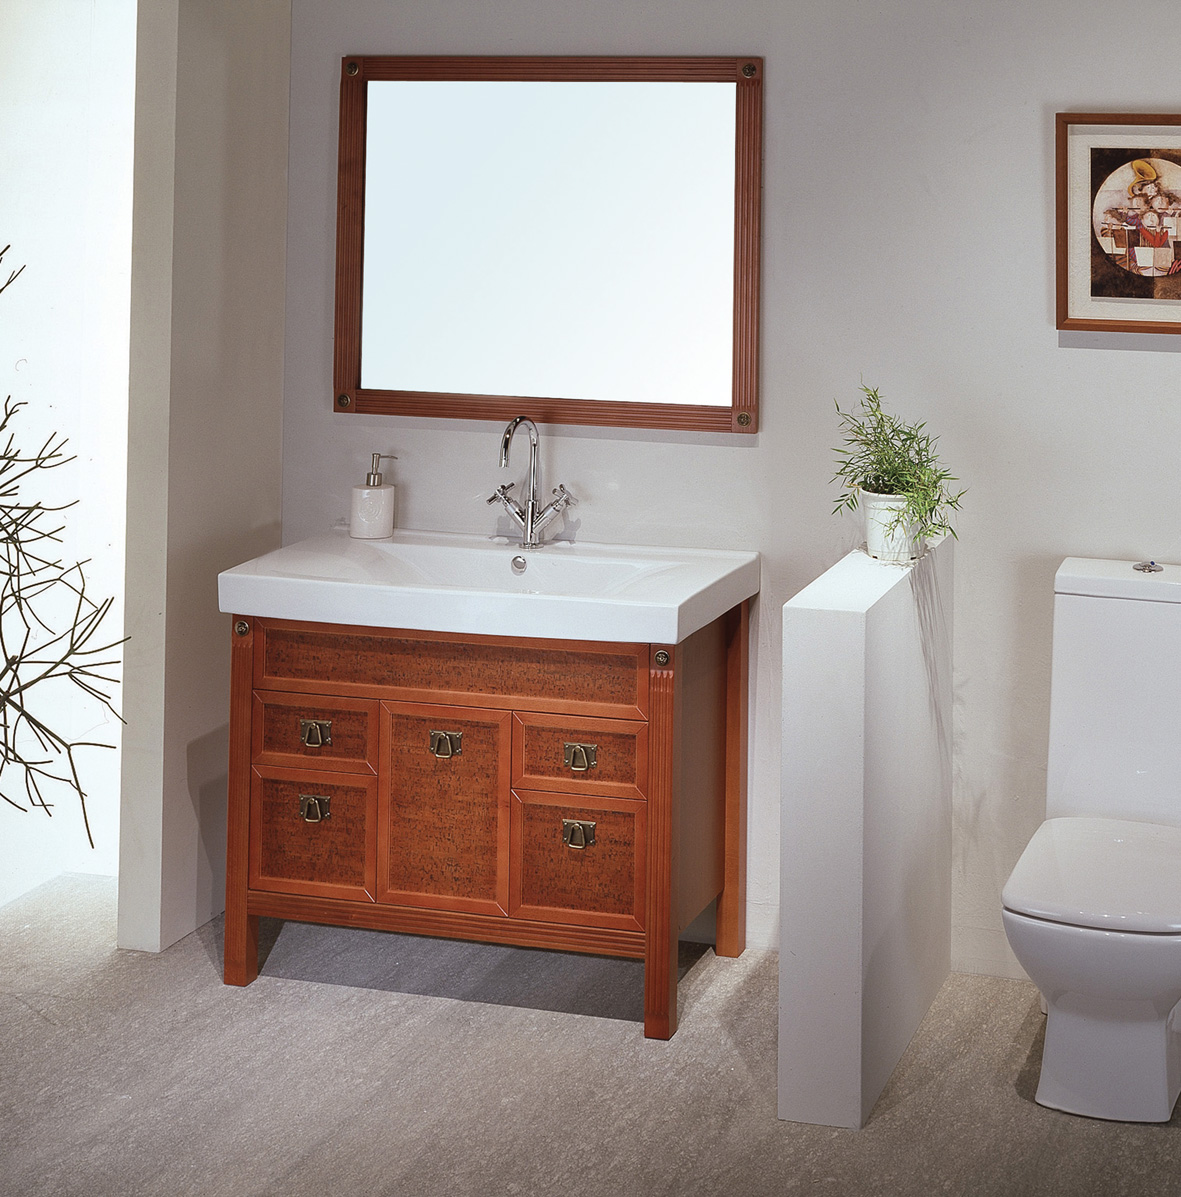 Bathroom Vanity Cabinet (Image 4 of 10)